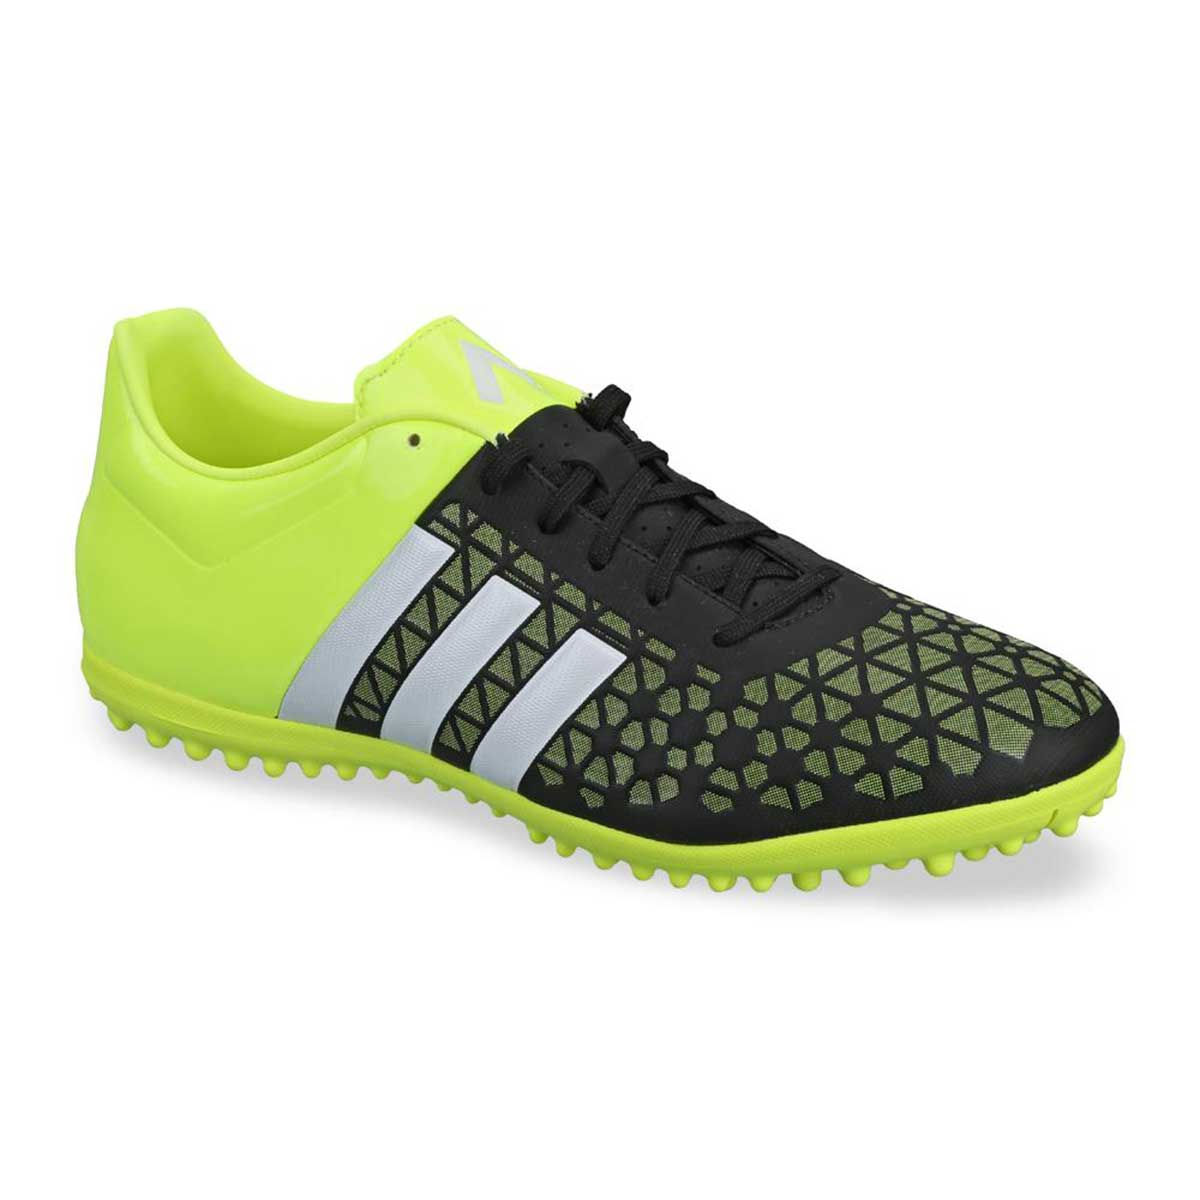 Football Shoes, Football, Sports, Buy, Adidas, Adidas ACE 15.3 Turf  Football Shoes , ,